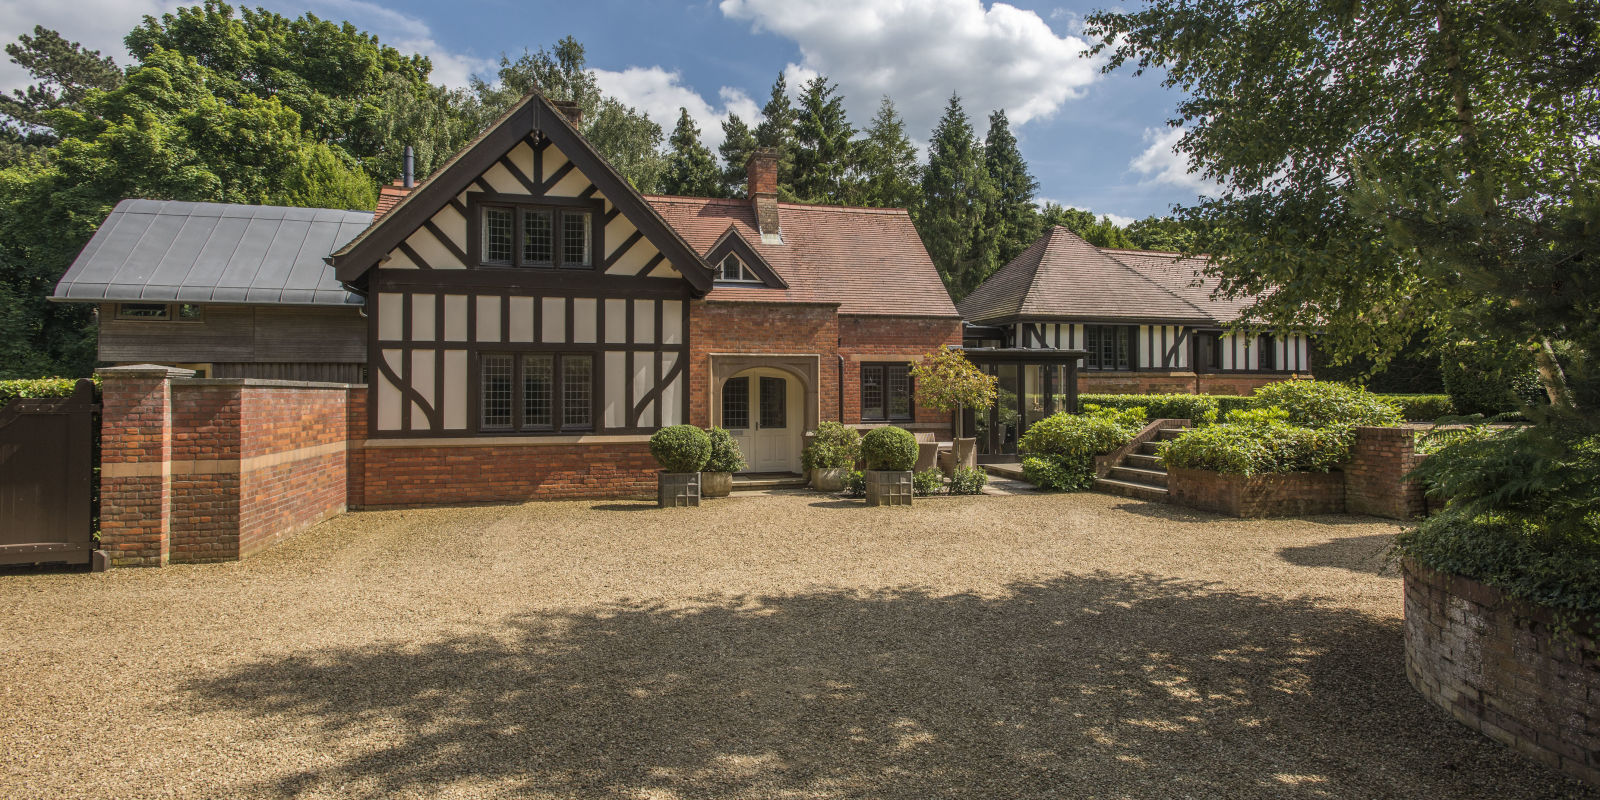 cost to renovate a kitchen knives norfolk home near queen elizabeth's sandringham estate was ...